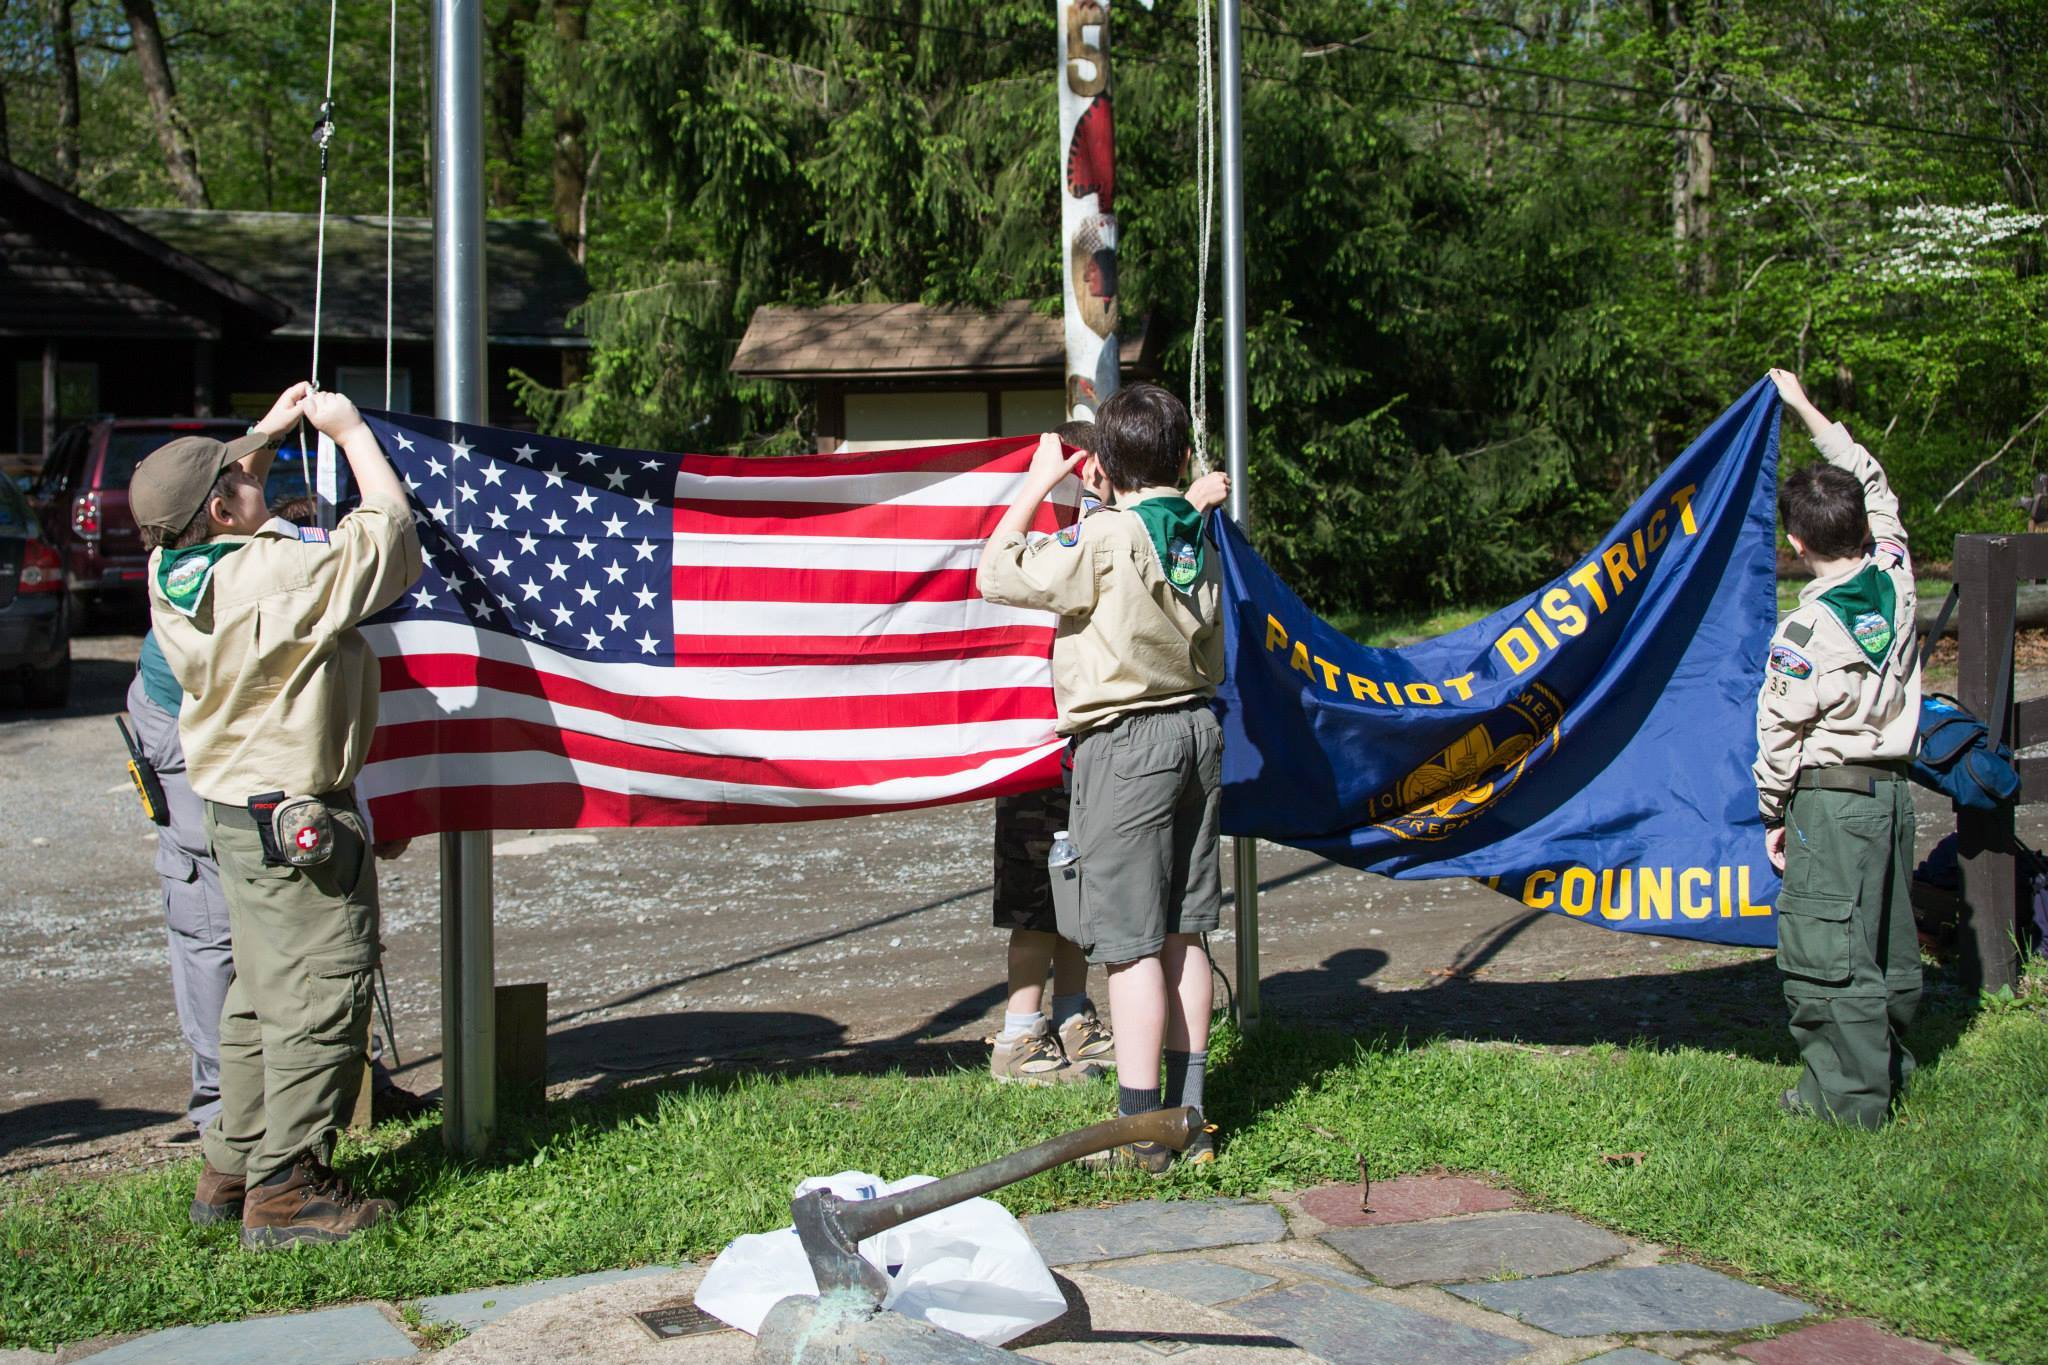 8a90c4e3f8d0c2039f3a_Camporee-_Jon_Joshua_pic_-_Flag_Raising_at_Opening_Ceremony.jpg